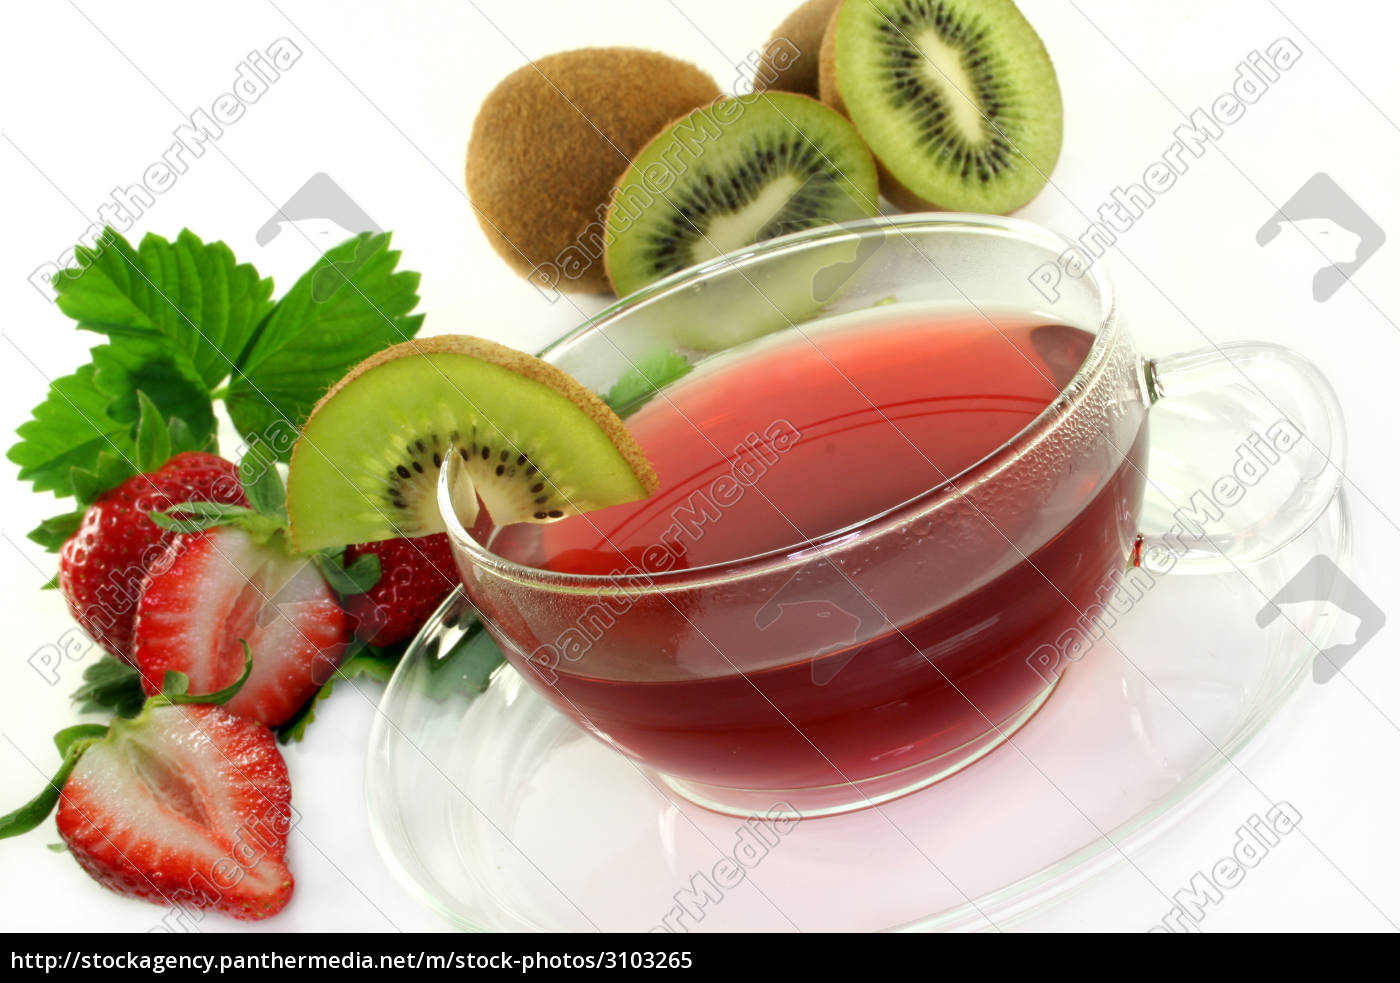 strawberry, kiwi, tea - 3103265